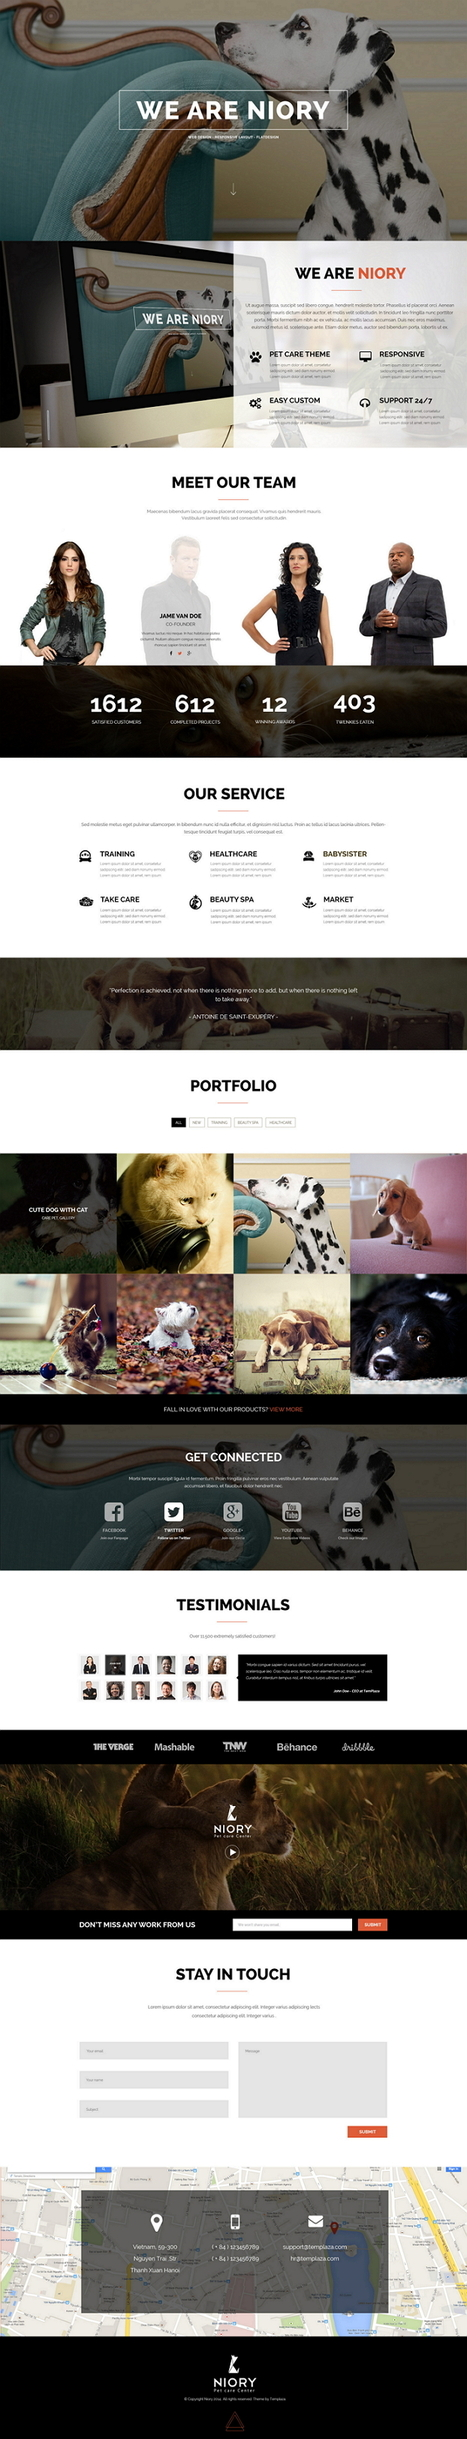 Niory Pet Care Responsive Joomla Template - Download New Themes | Sports & Entertainment | Scoop.it